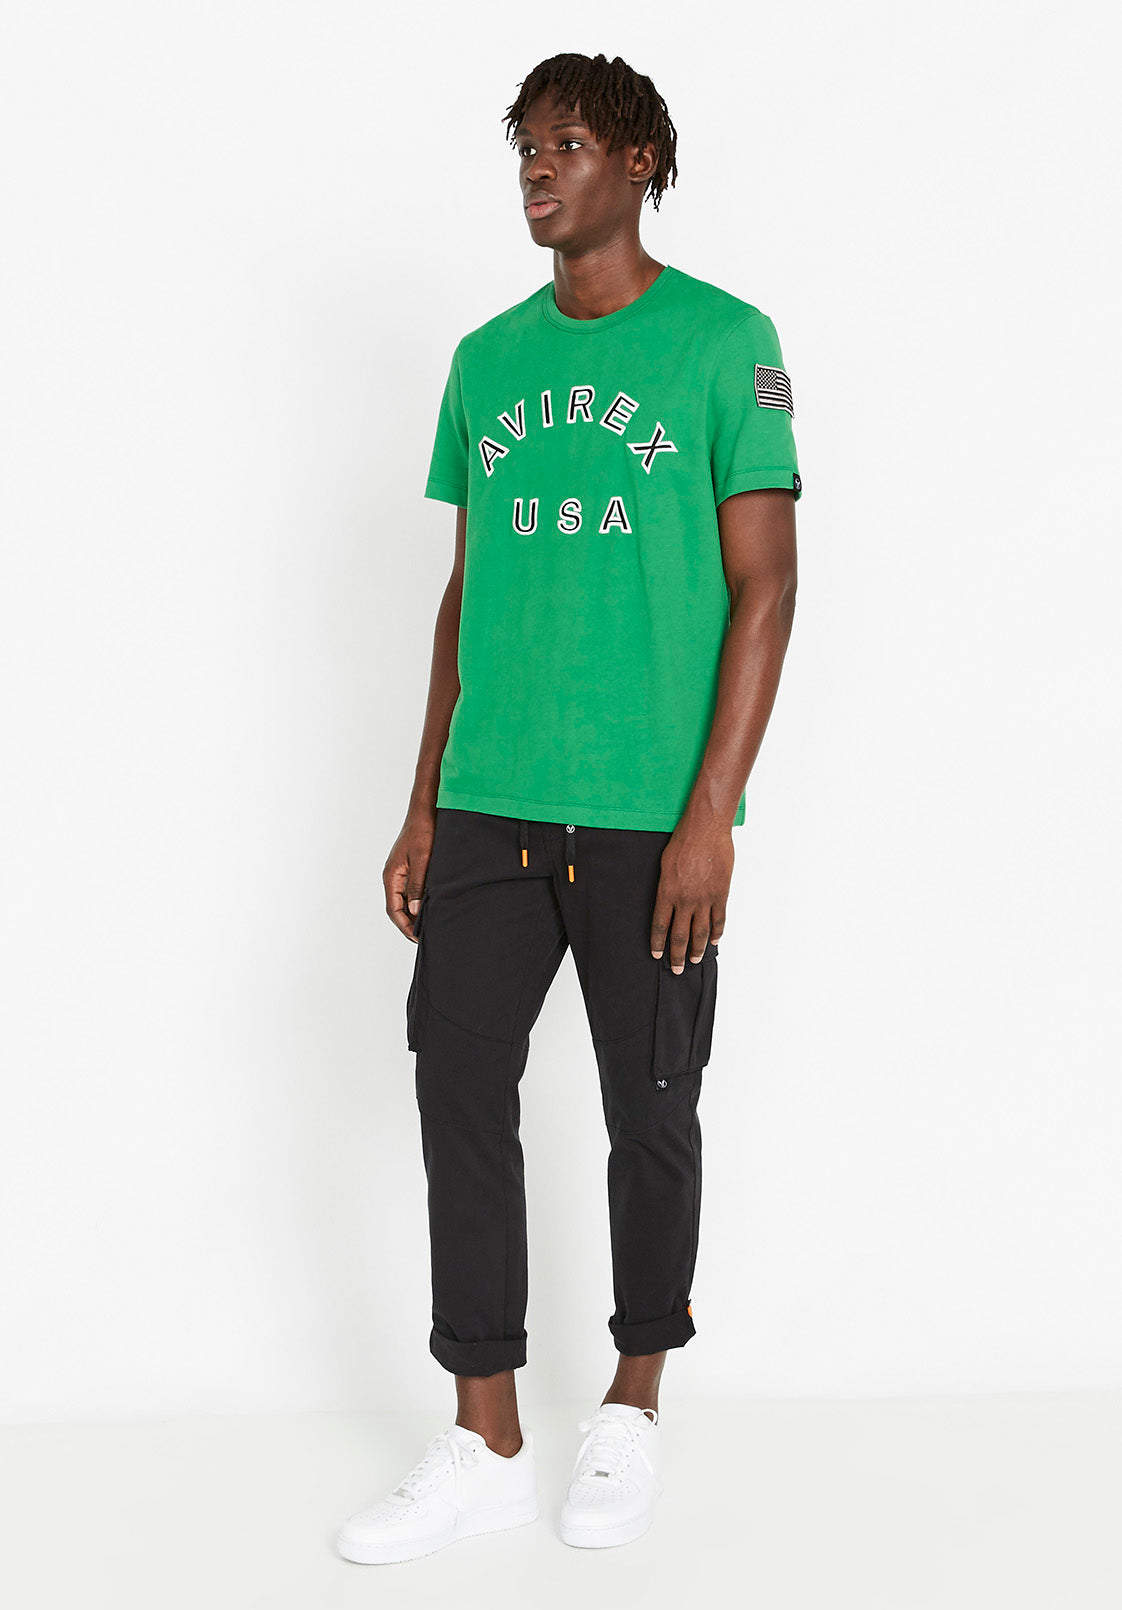 Full view of men wearing a green t-shirt with Avirex USA embroidery in black & white on front chest paired with black cargo pants